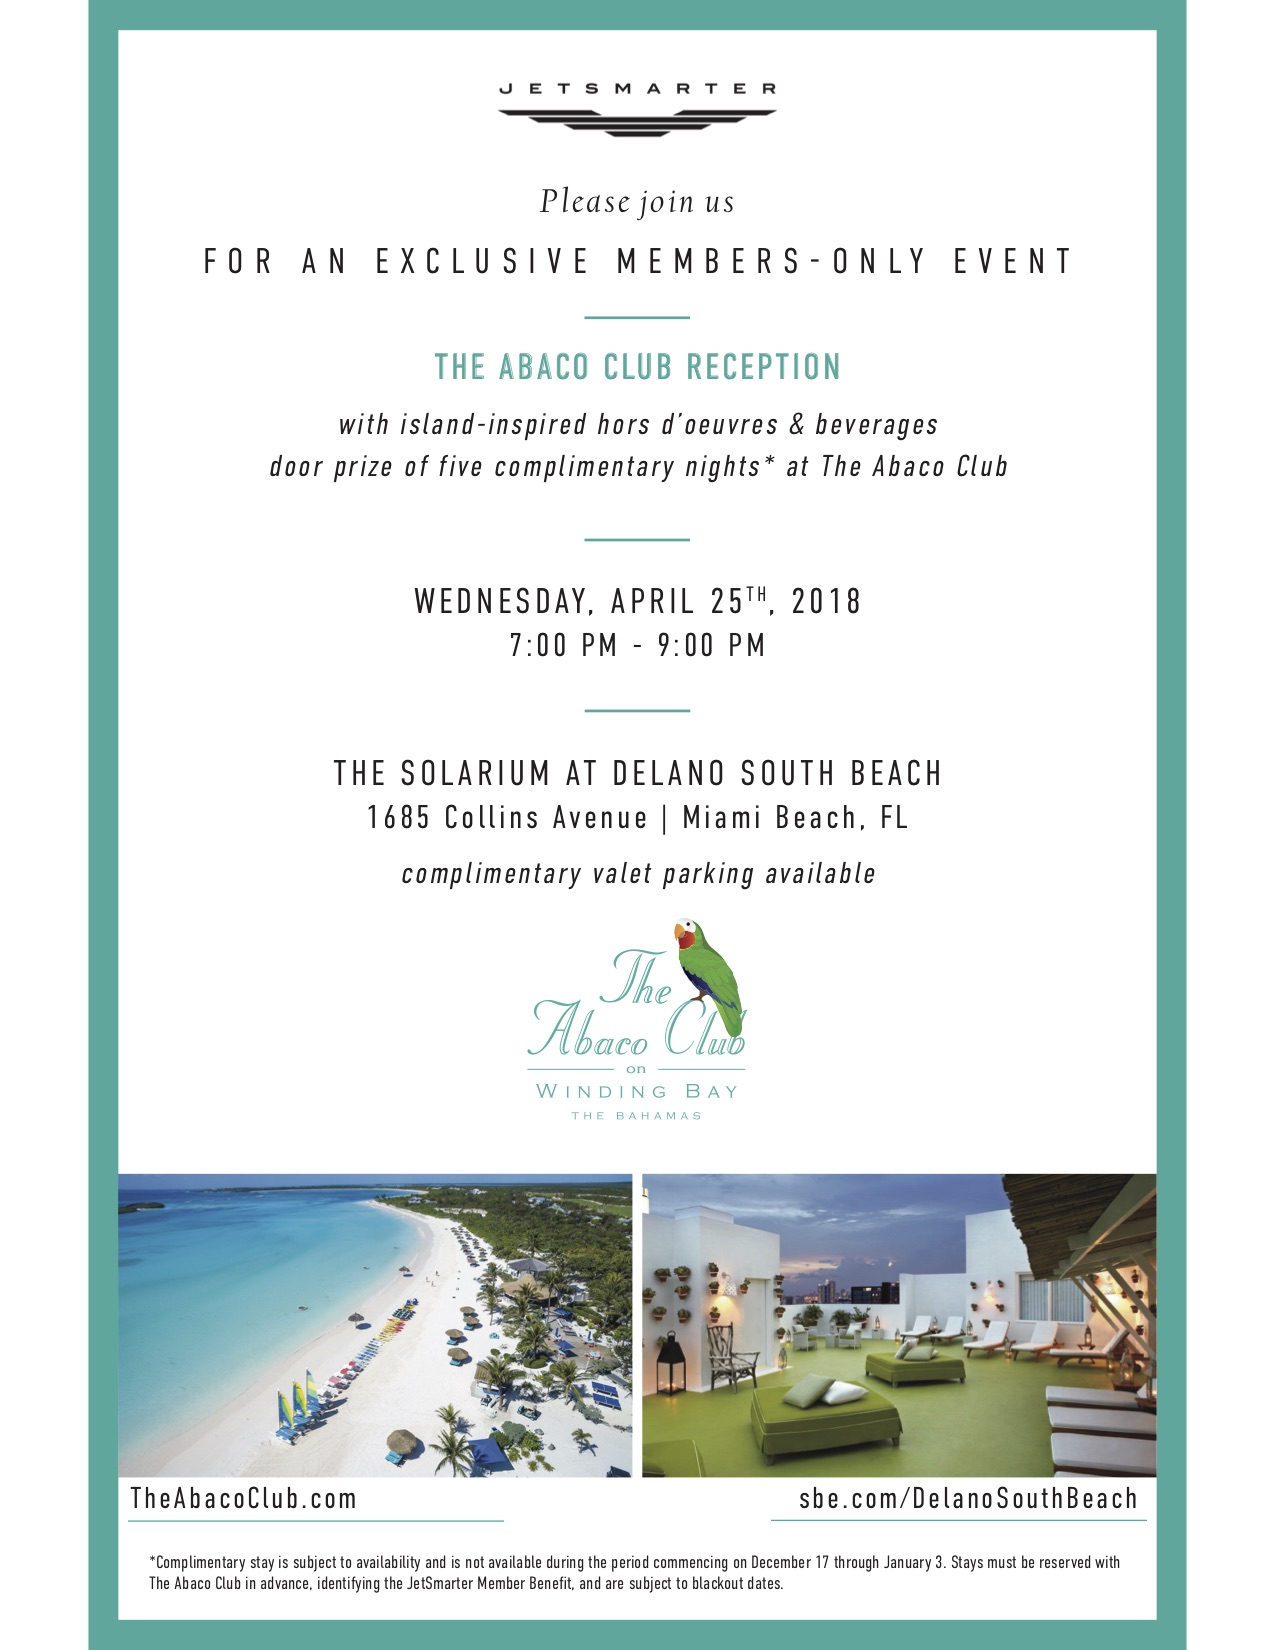 Jetsmarter the abaco club reception in miami beach this invite is valid for a member 1 guest upon rsvp the invite is non transferable and capacity is limited stopboris Image collections